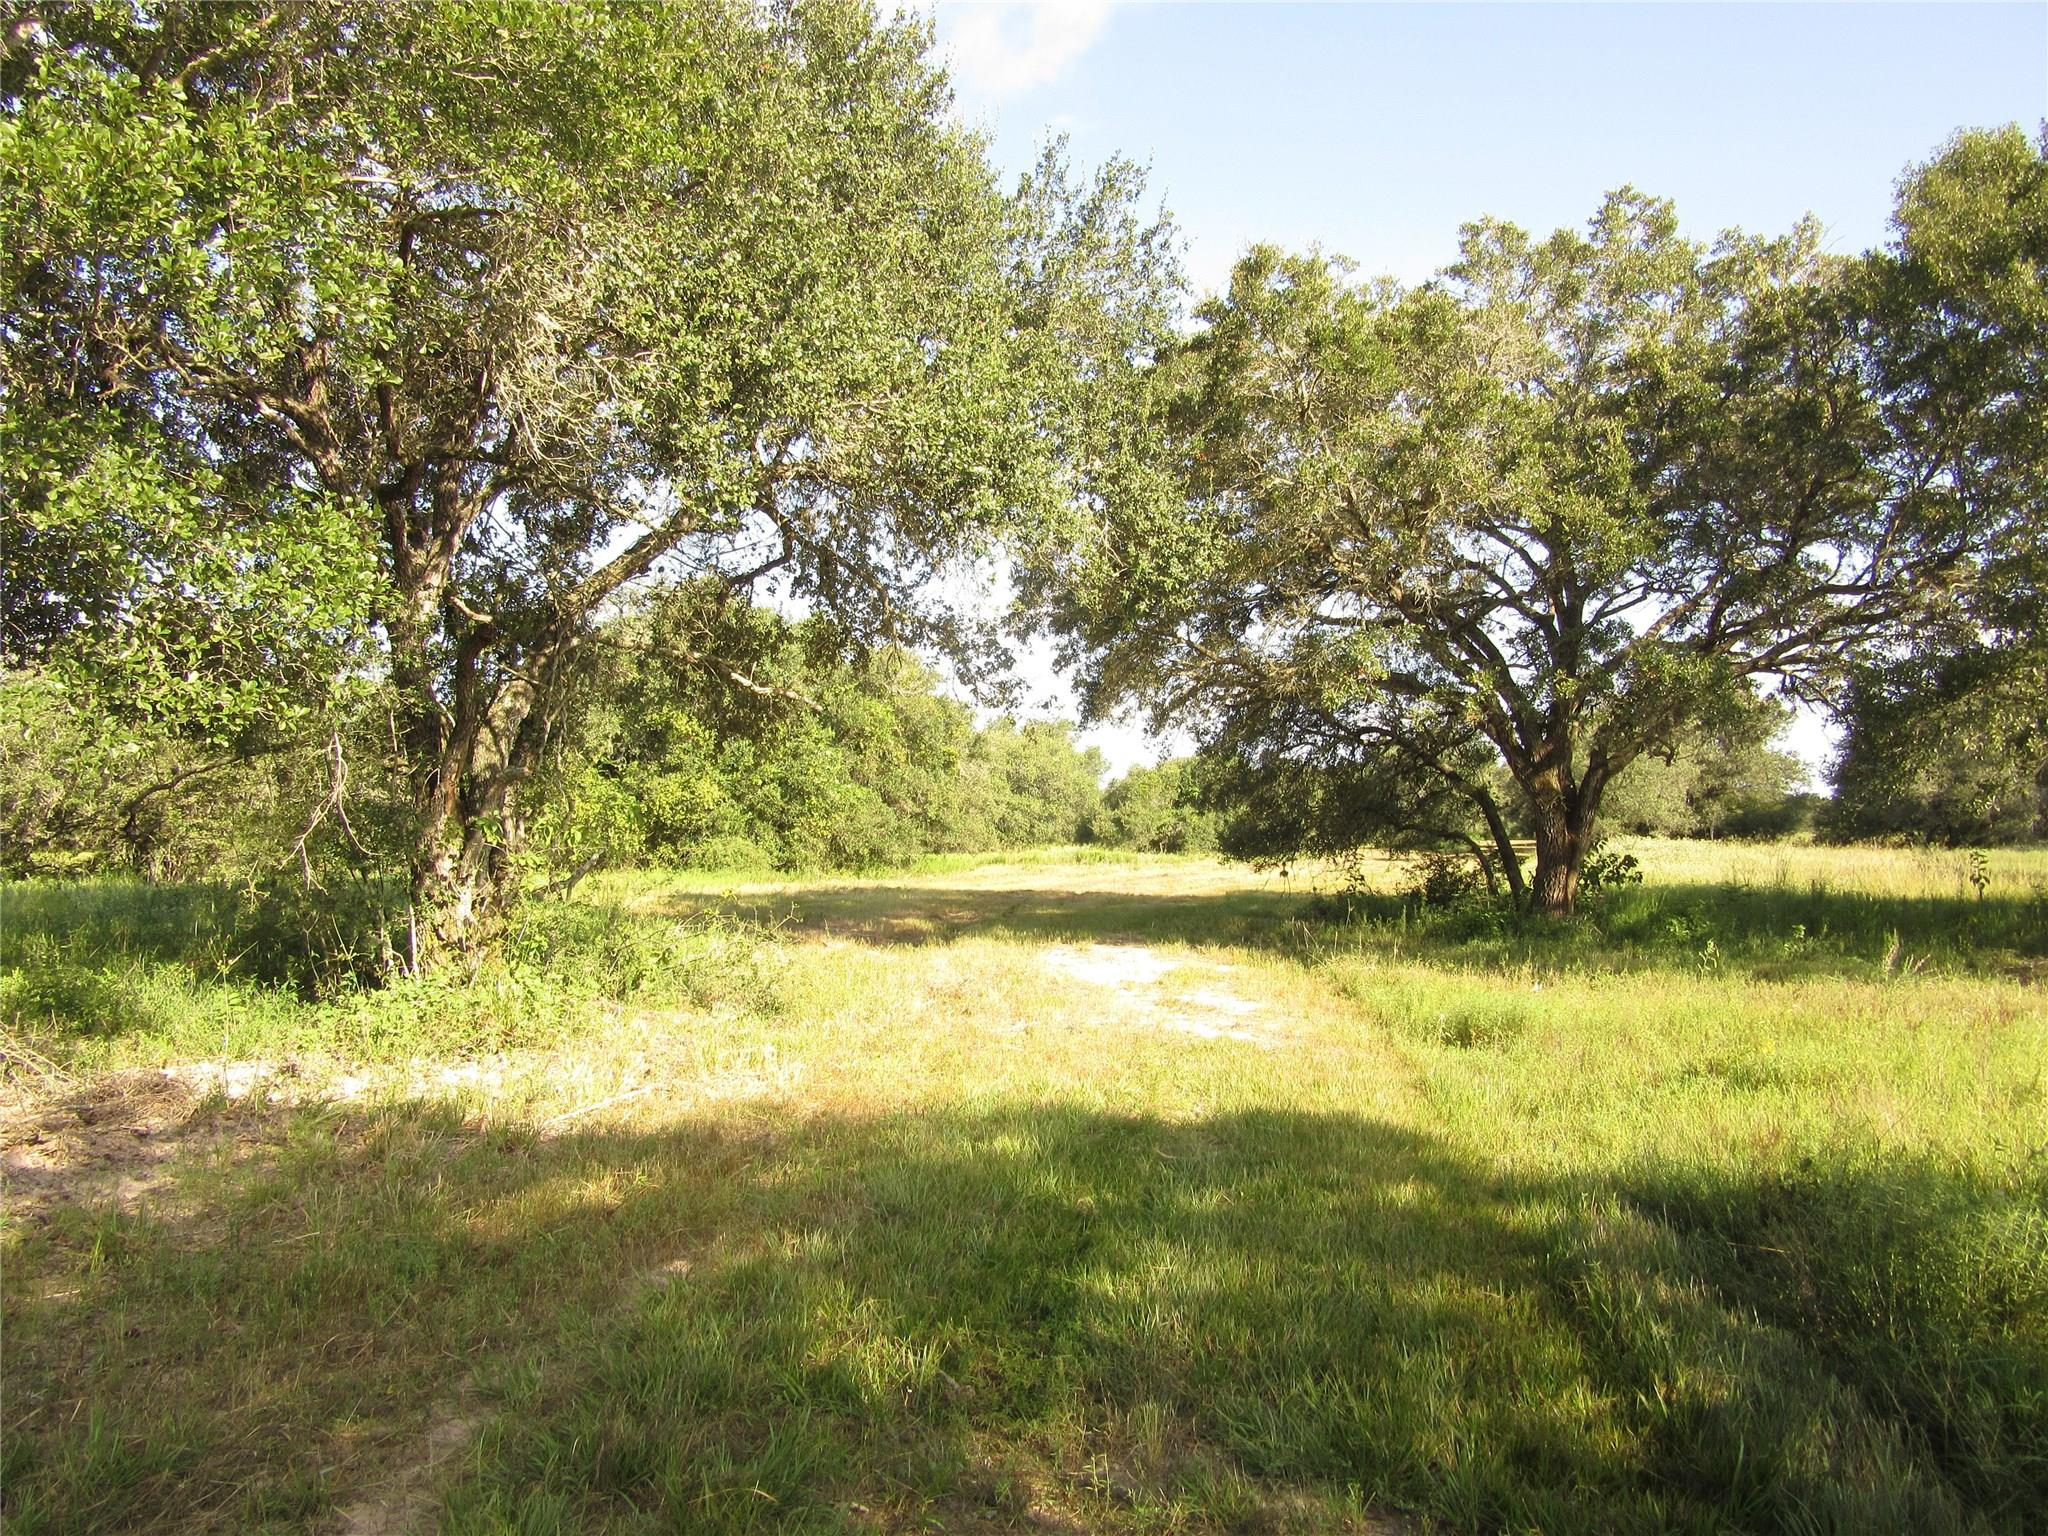 0000 CR 16 Property Photo - Altair, TX real estate listing